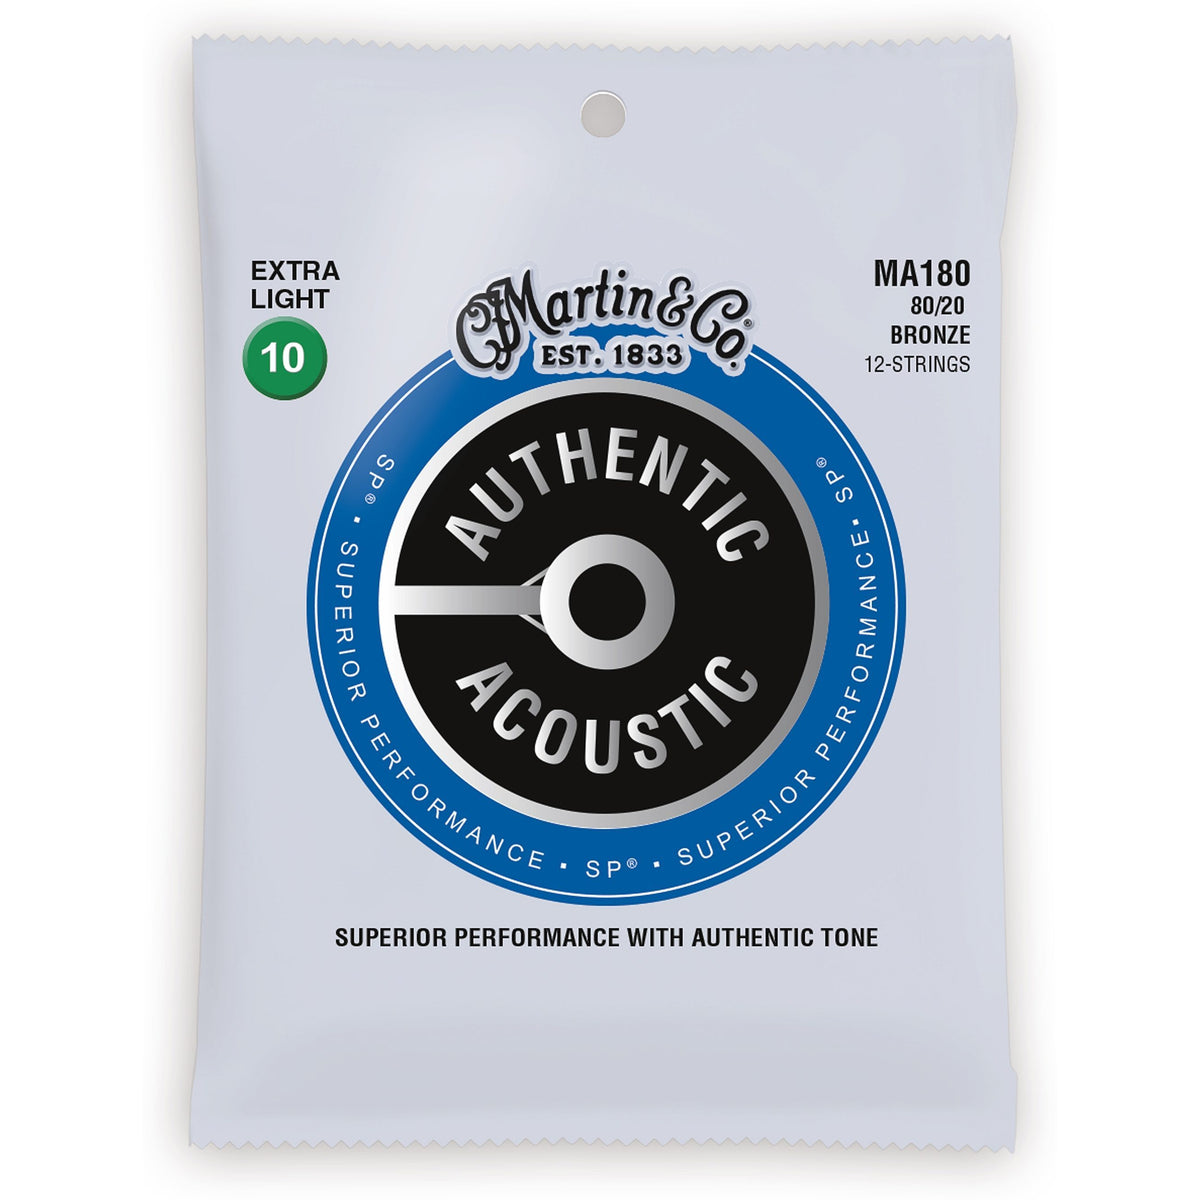 Martin Authentic SP 80/20 Bronze 12-String Acoustic Guitar Strings, MA180, Extra Light